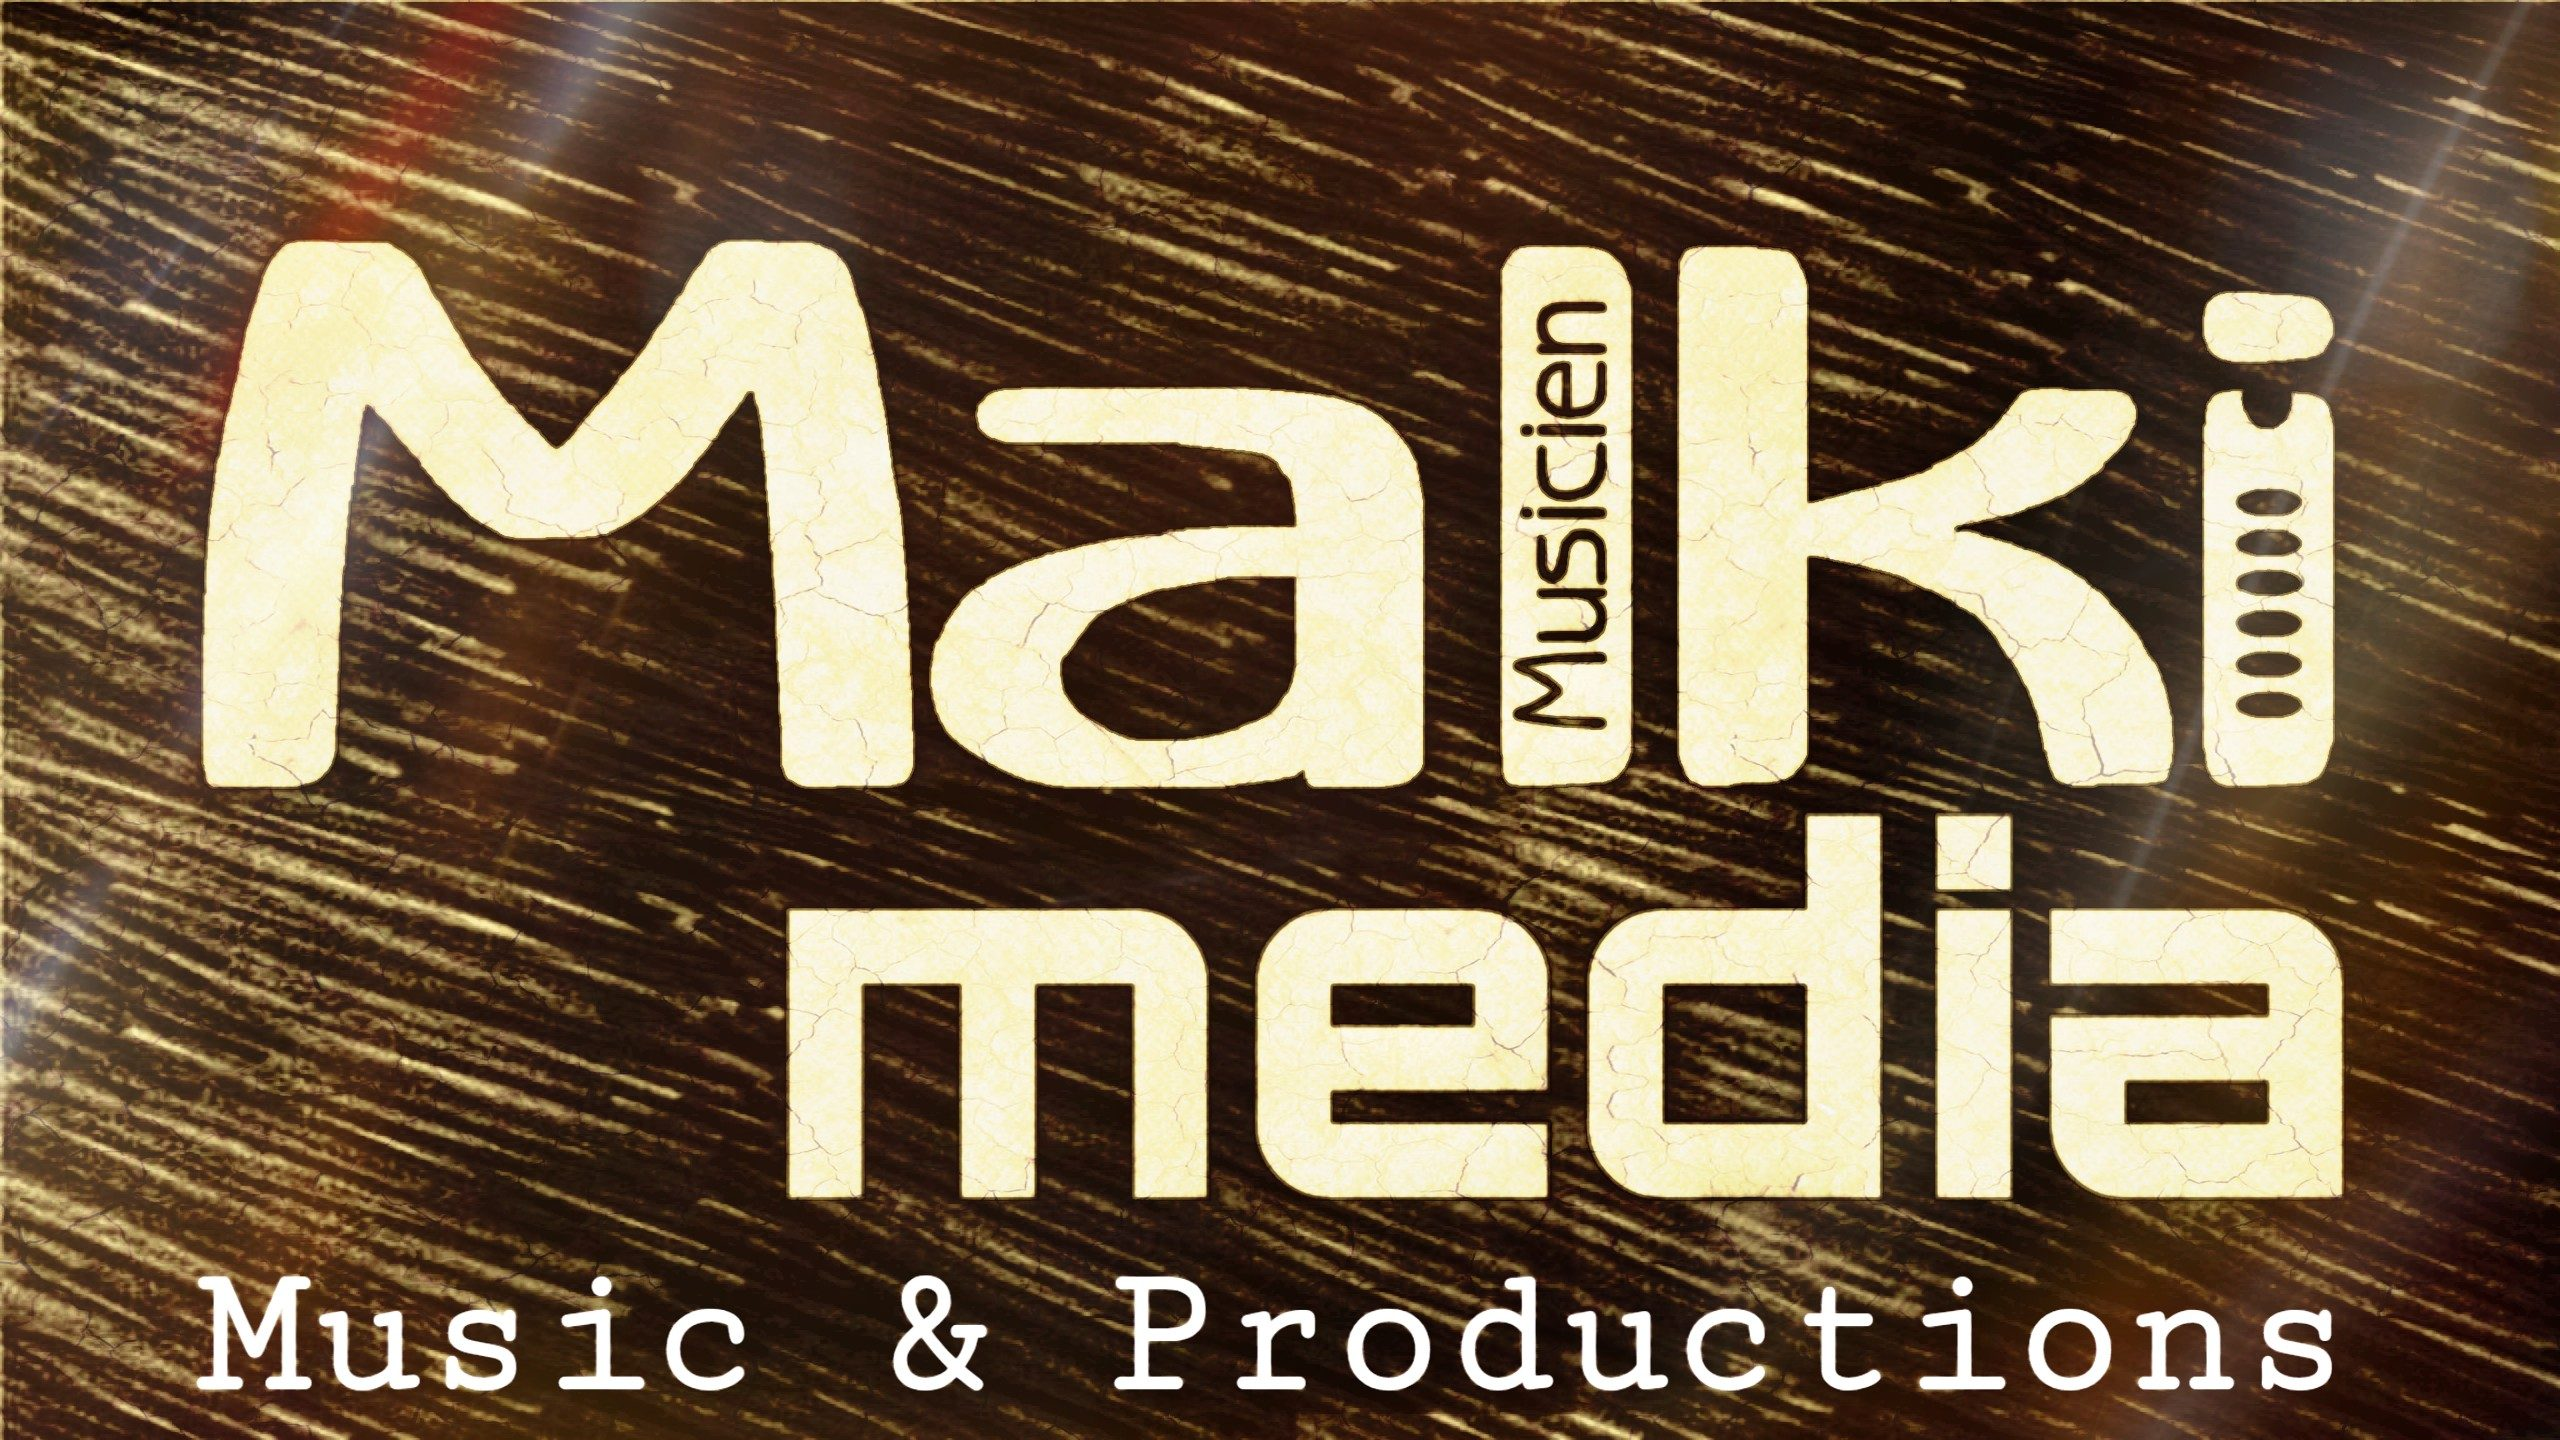 MALKI MEDIA – https://malki.media